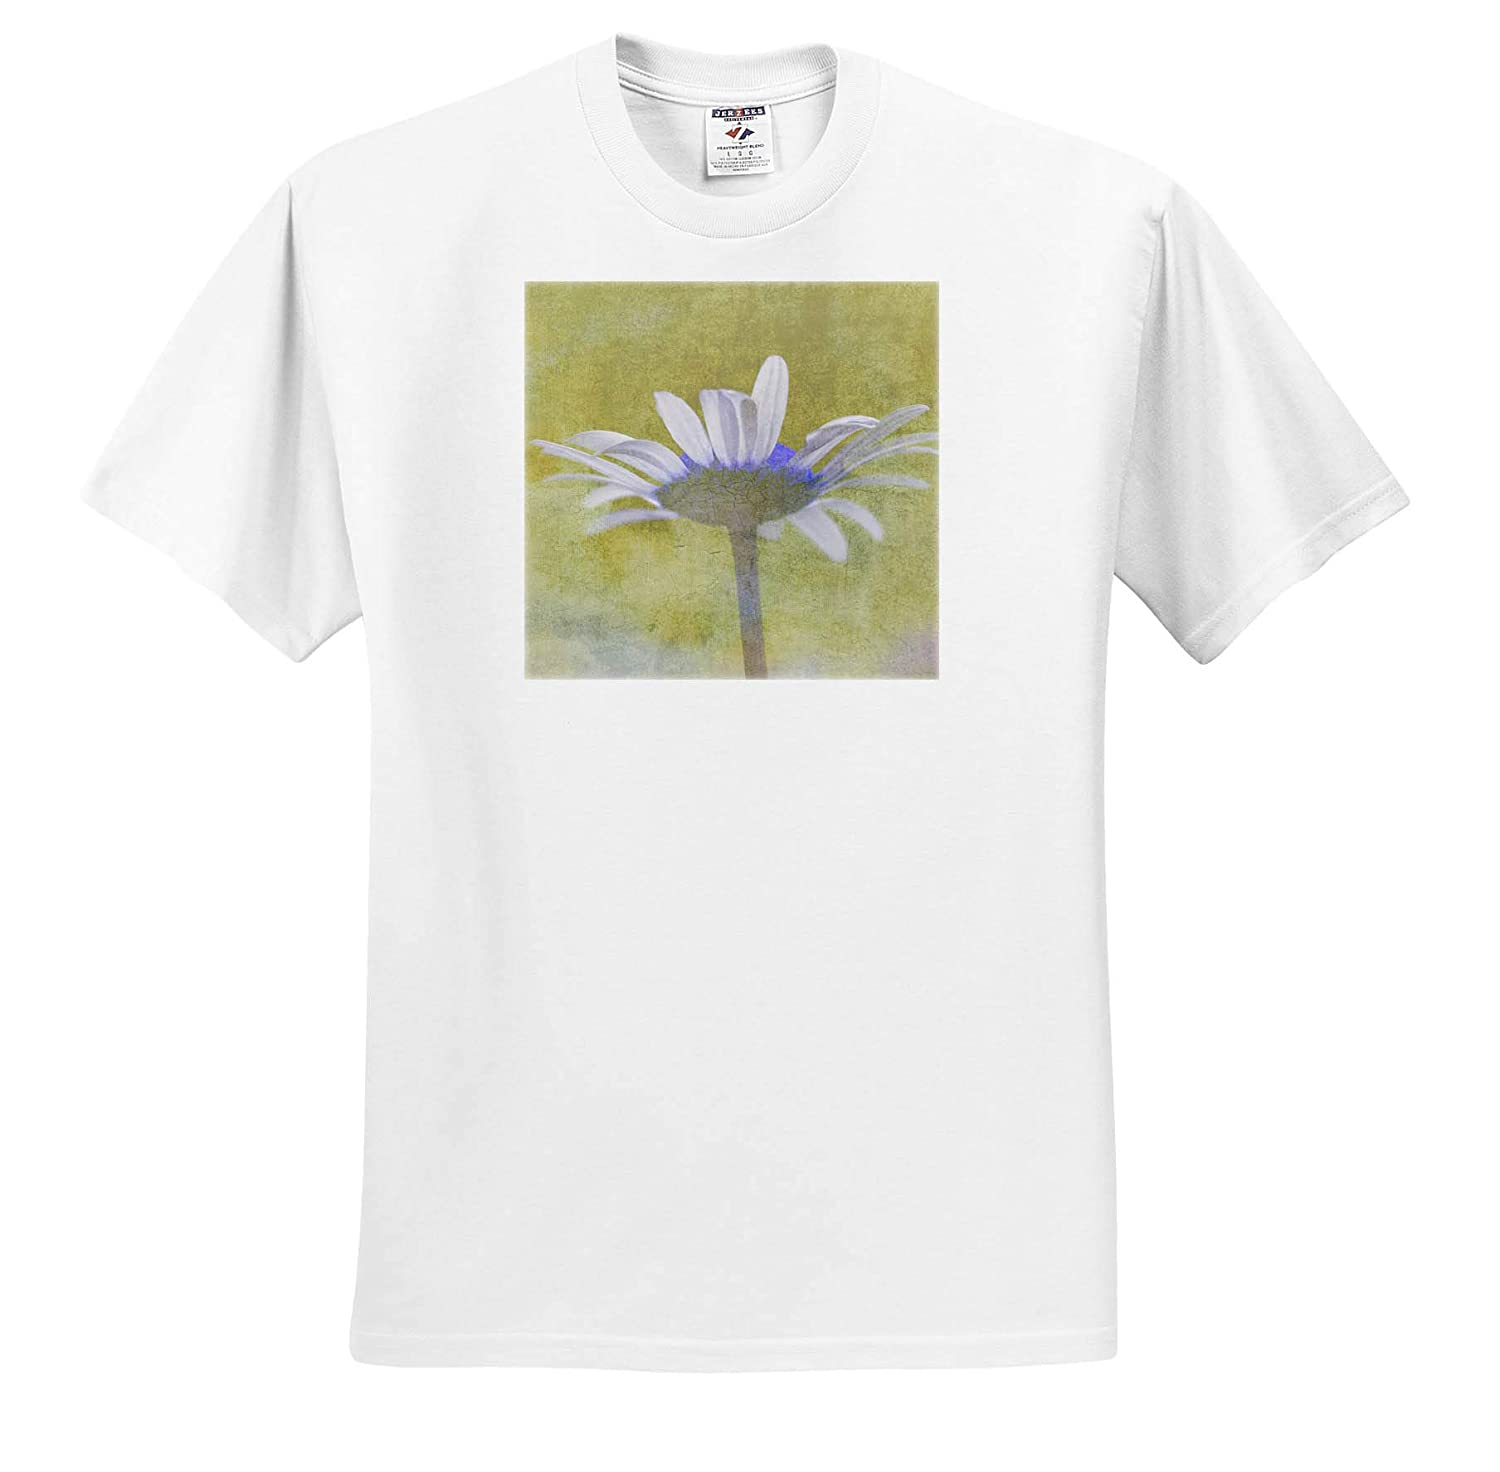 3dRose Danita Delimont Oxeye Daisy composited with Textured Background Adult T-Shirt XL ts/_313899 Flowers